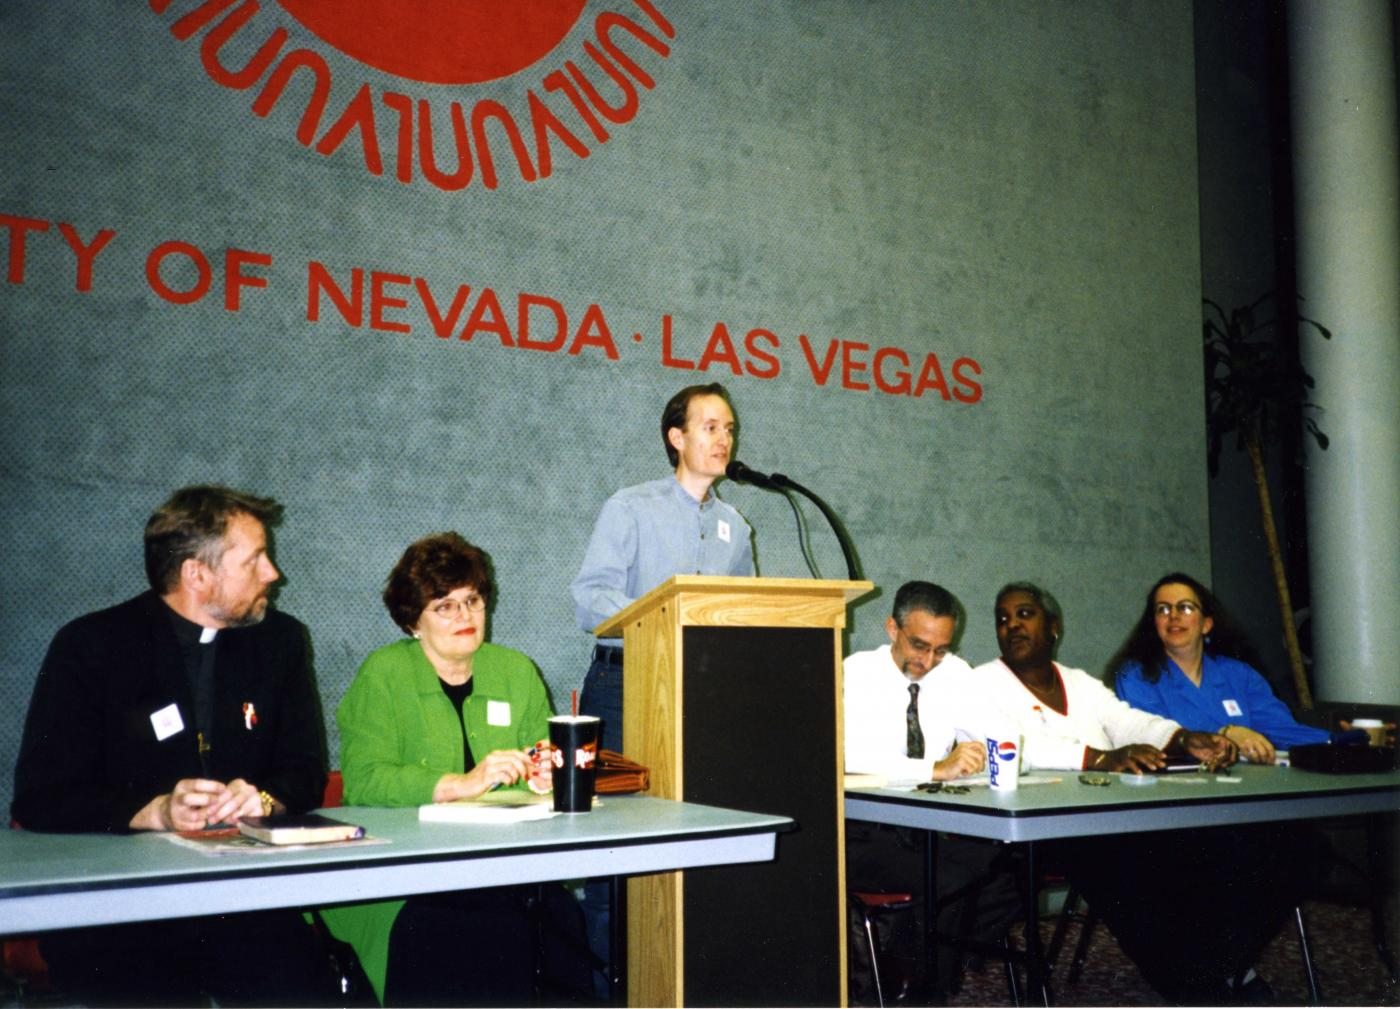 The ACLU holds a teach-in about same-sex marriage at UNLV Feb. 12, 1998.